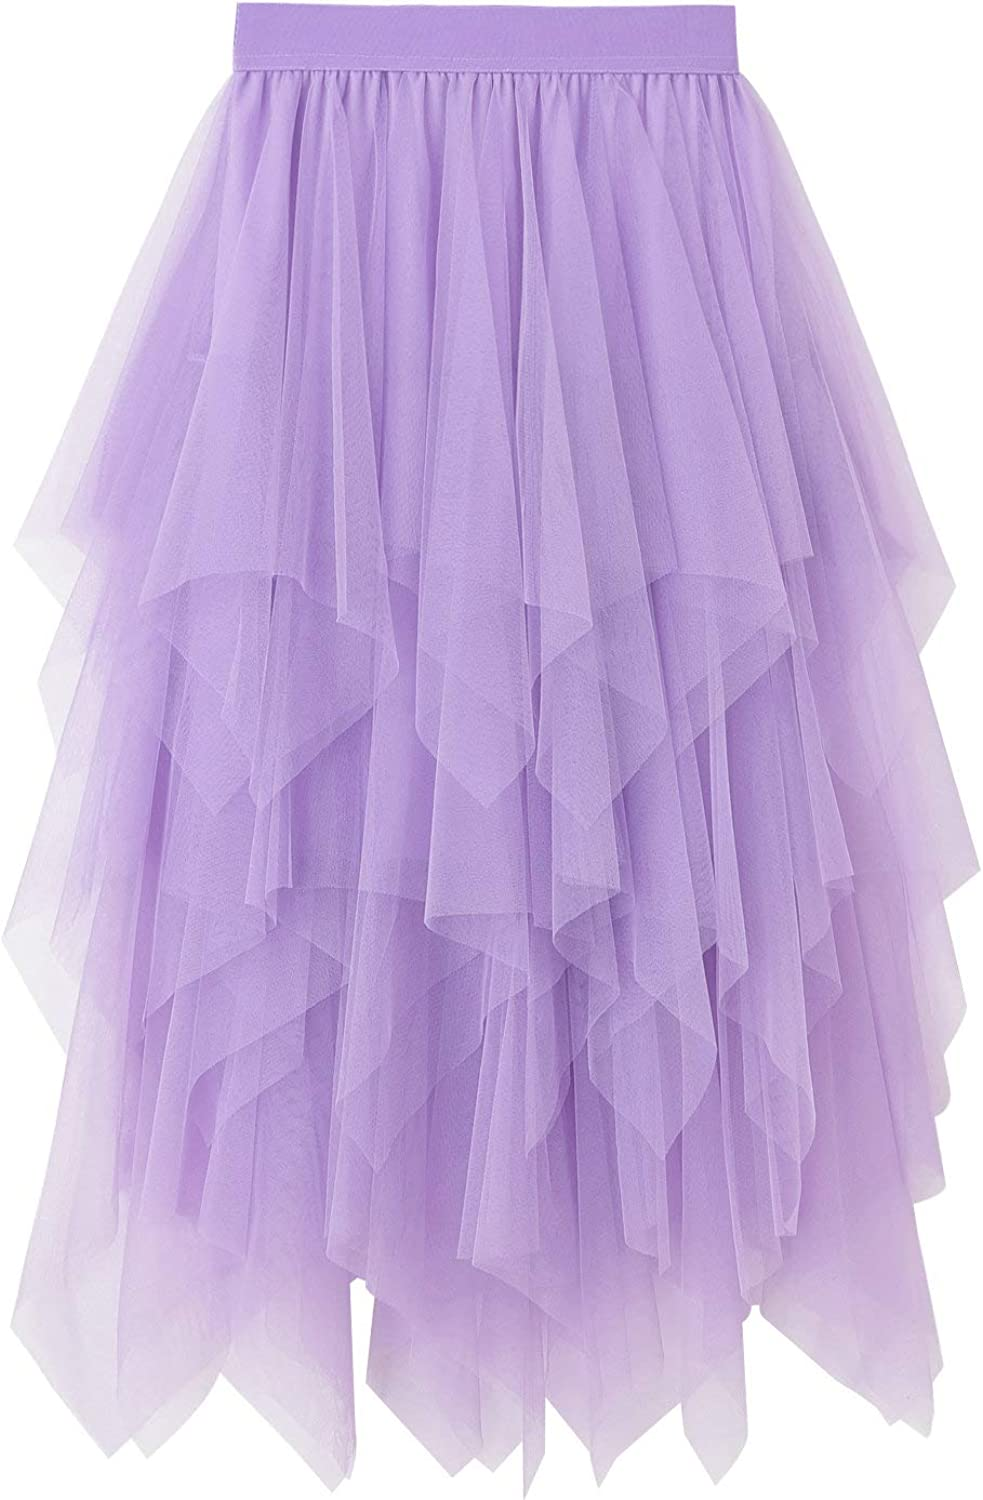 Women's Tulle Skirt High Waist Tiered Layered Mesh Ballet Prom Party Tulle Tutu A-line Midi Skirt